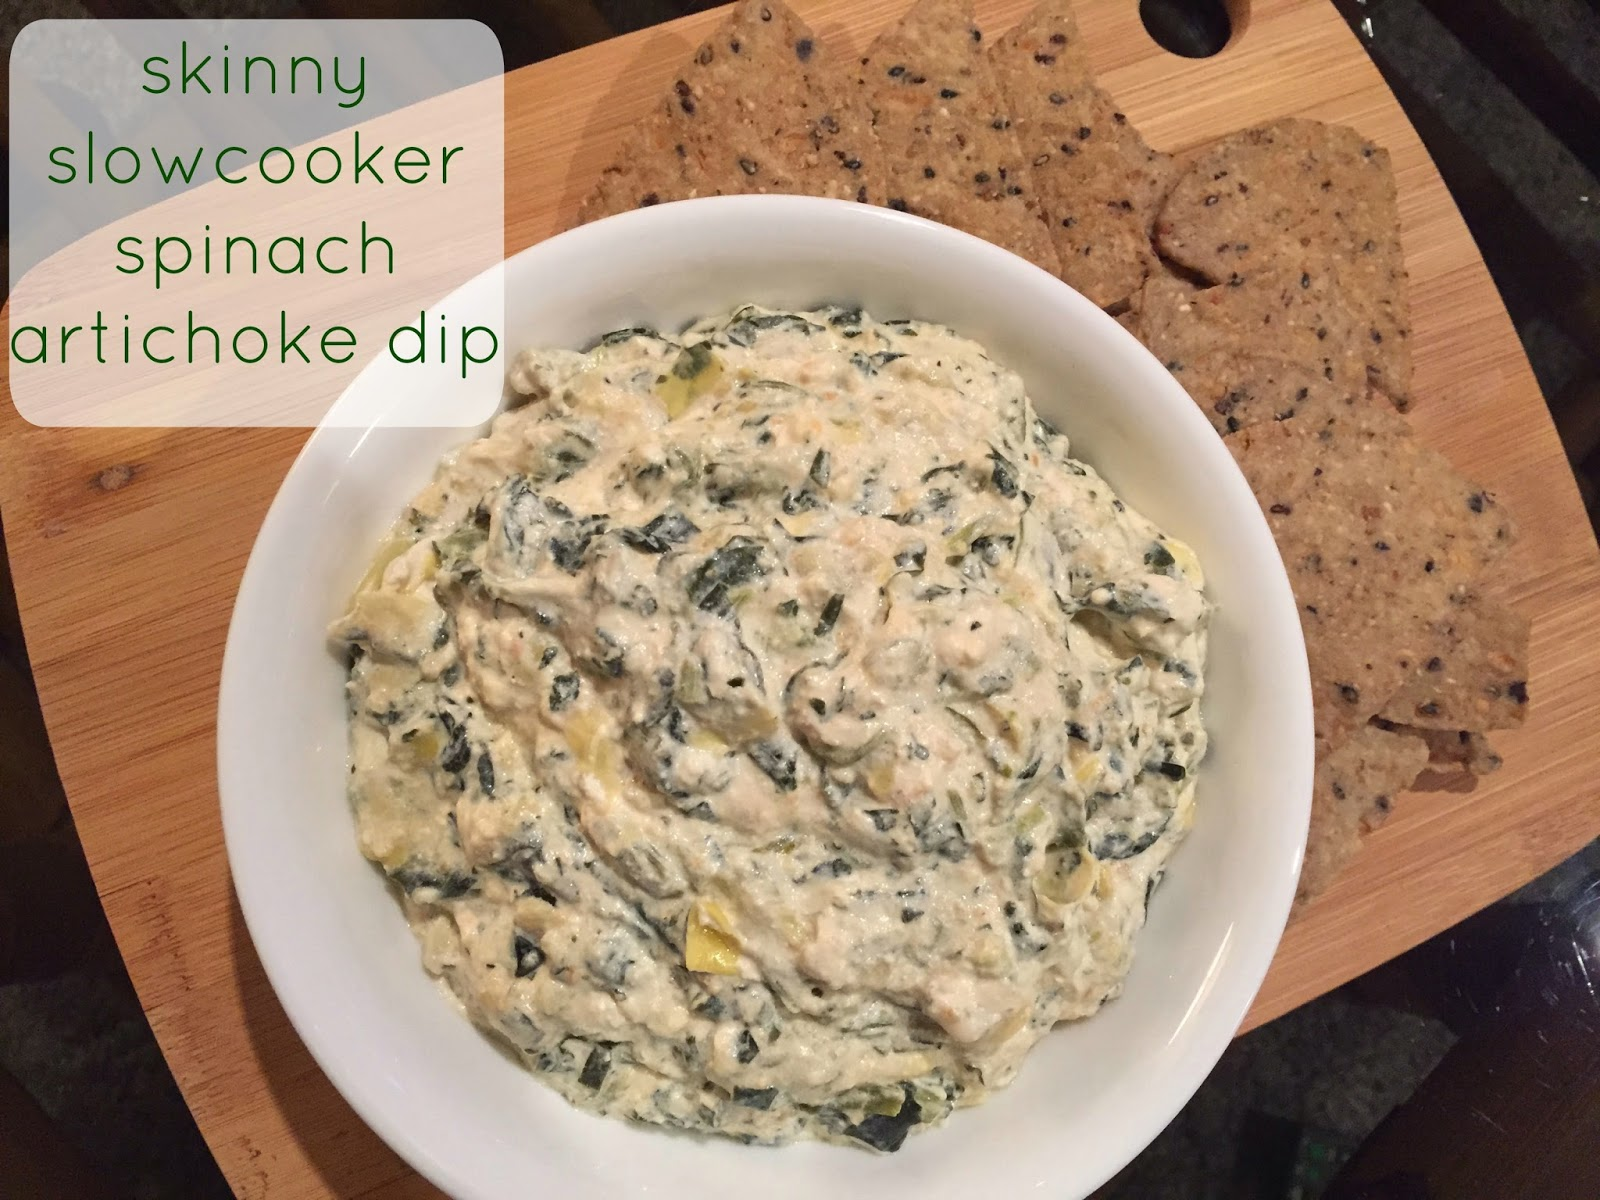 Skinny Slowcooker Spinach Artichoke Dip | BlogHer